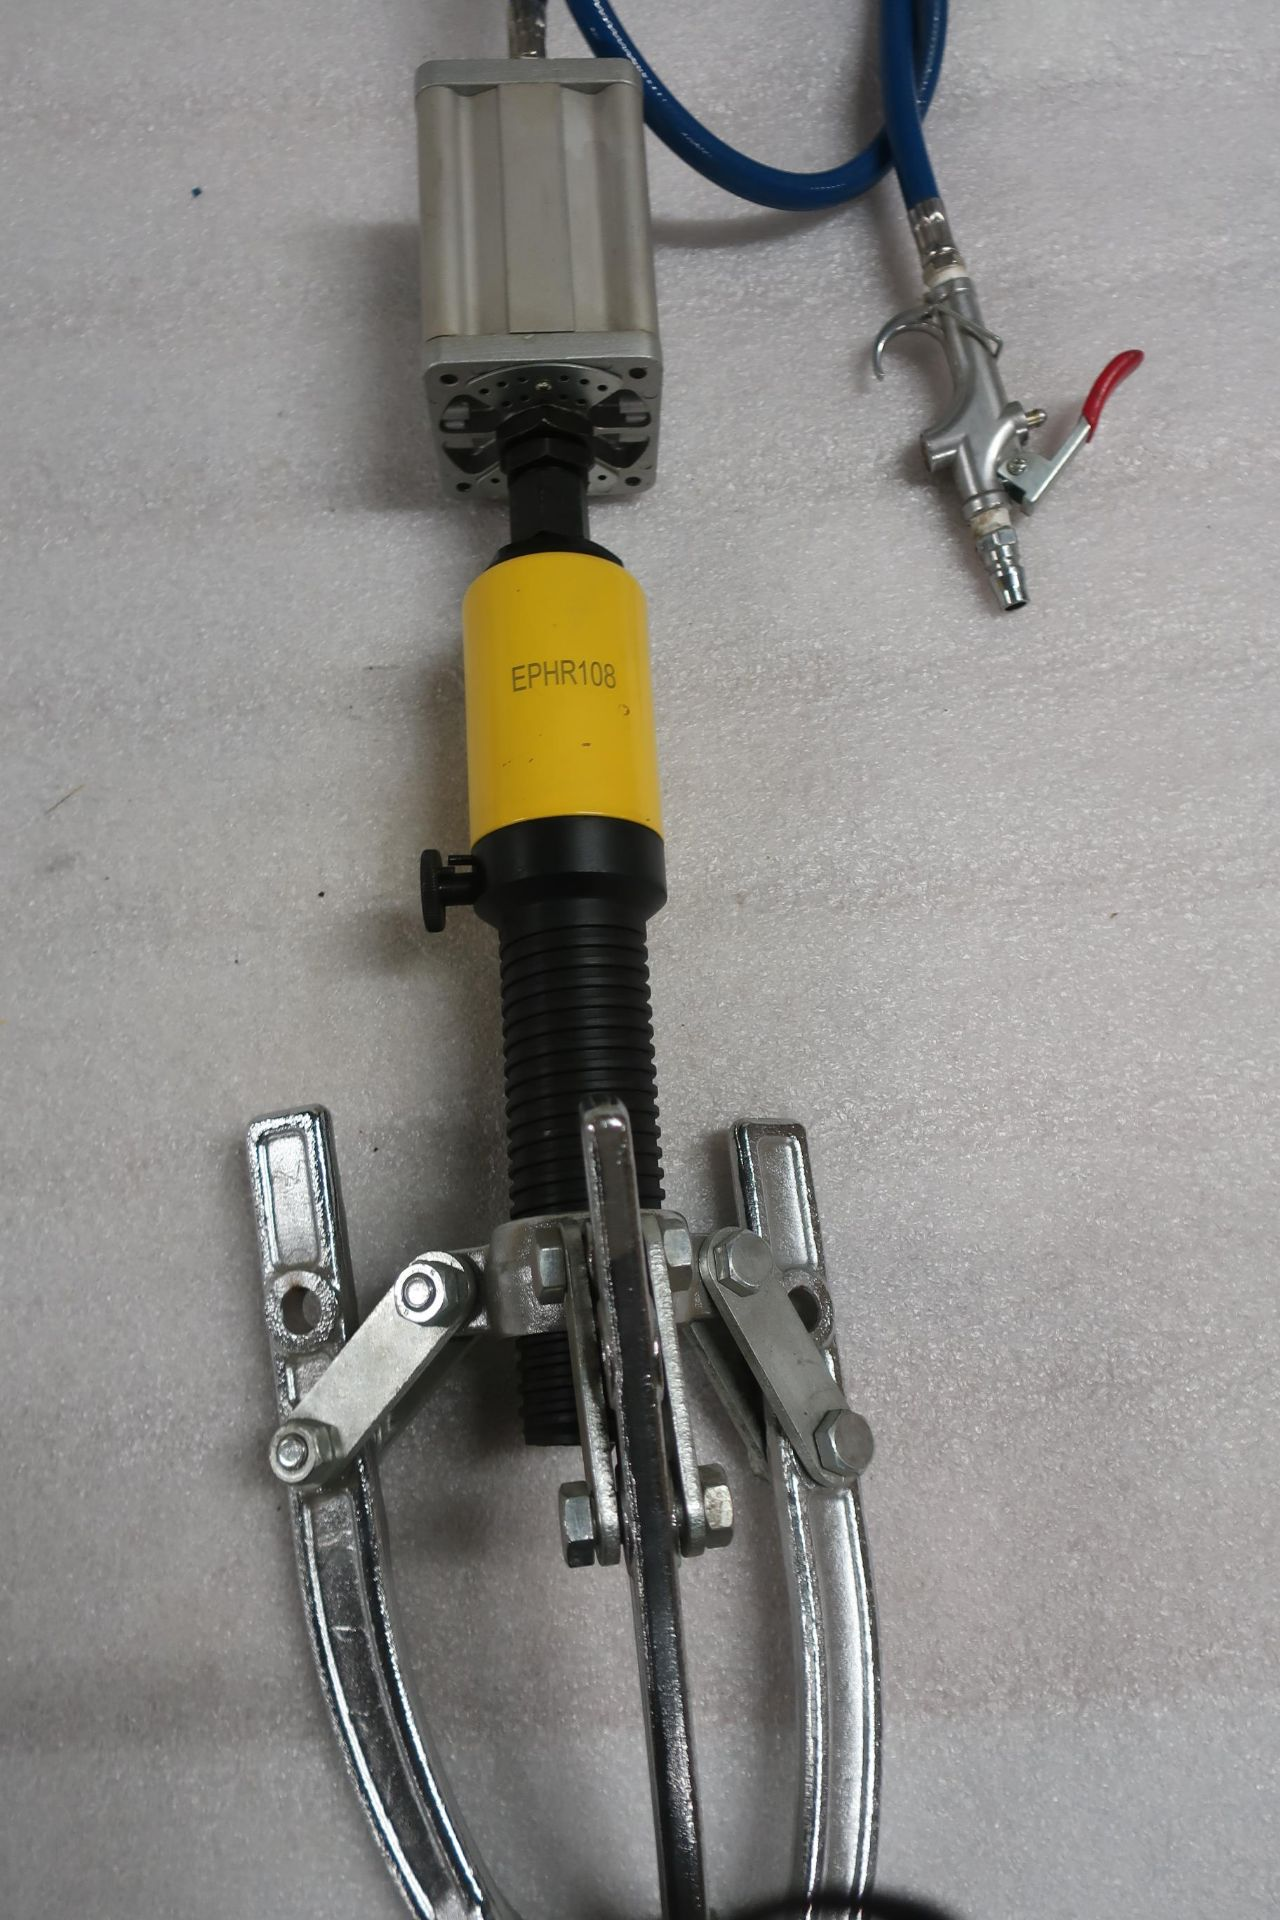 model EPHR108 Pneumatic / Air over Hydraulic Bearing Puller with 5 ton capacity MINT